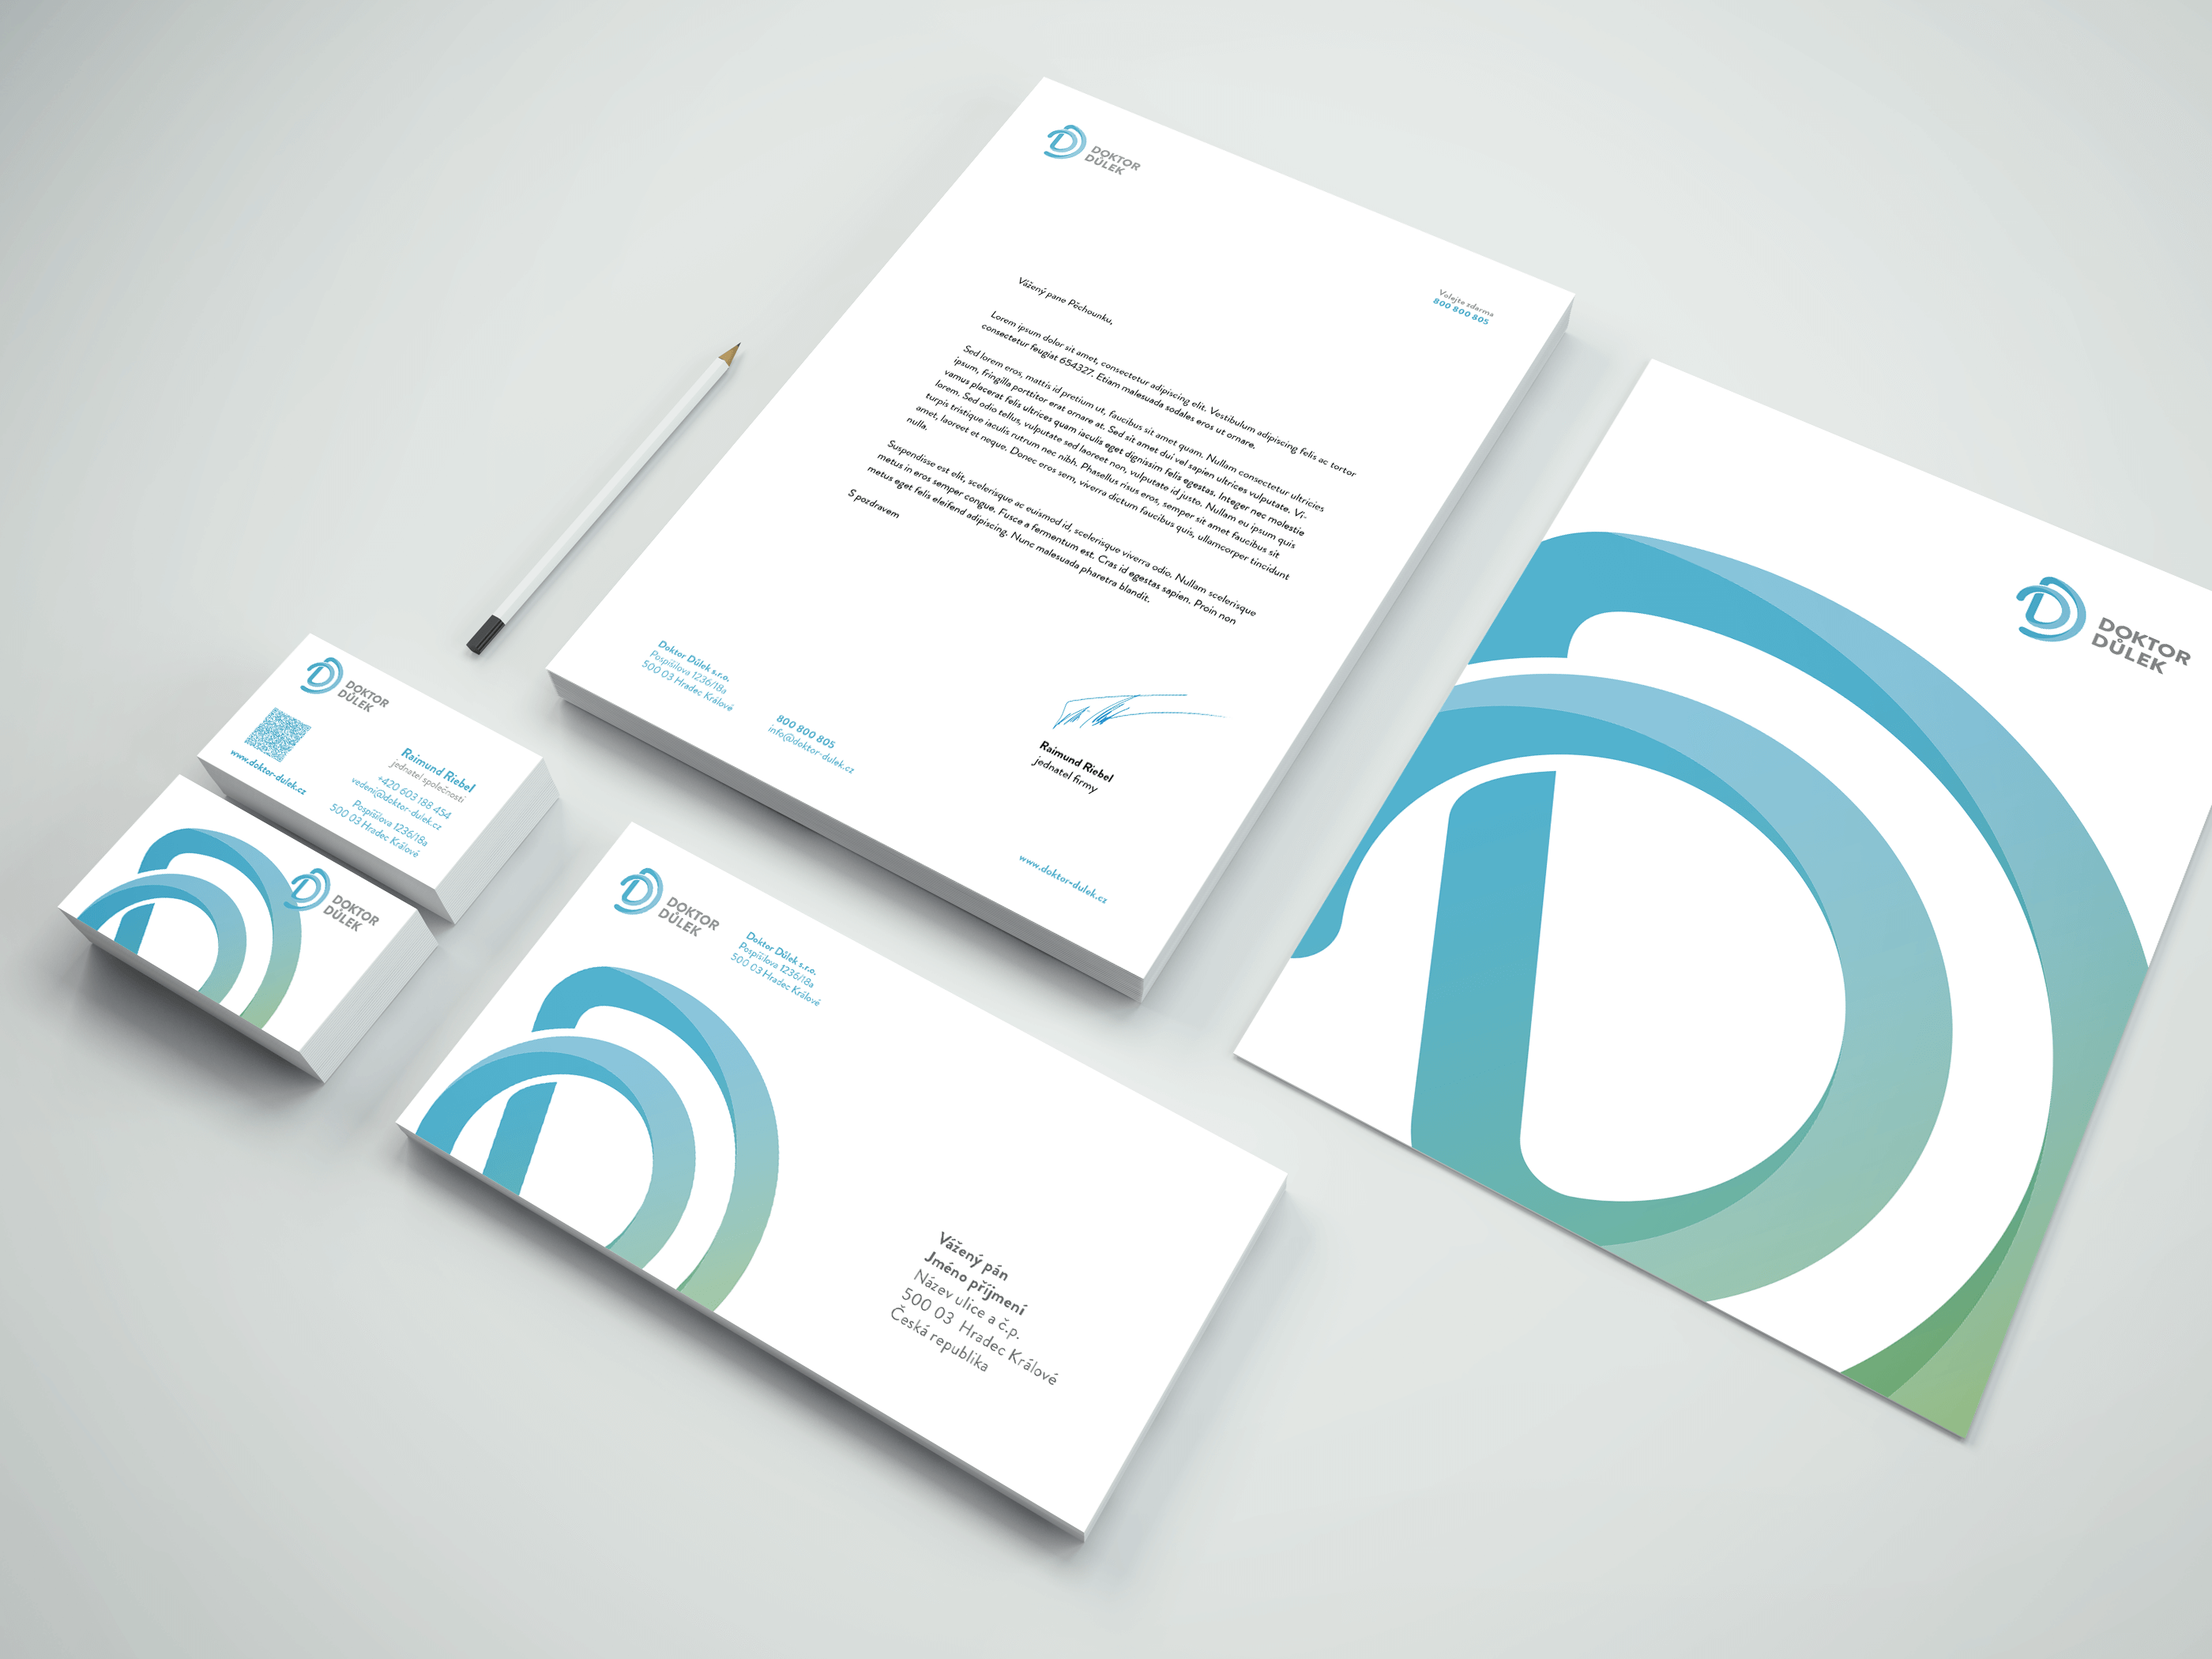 DD_stationary_mockup_v01